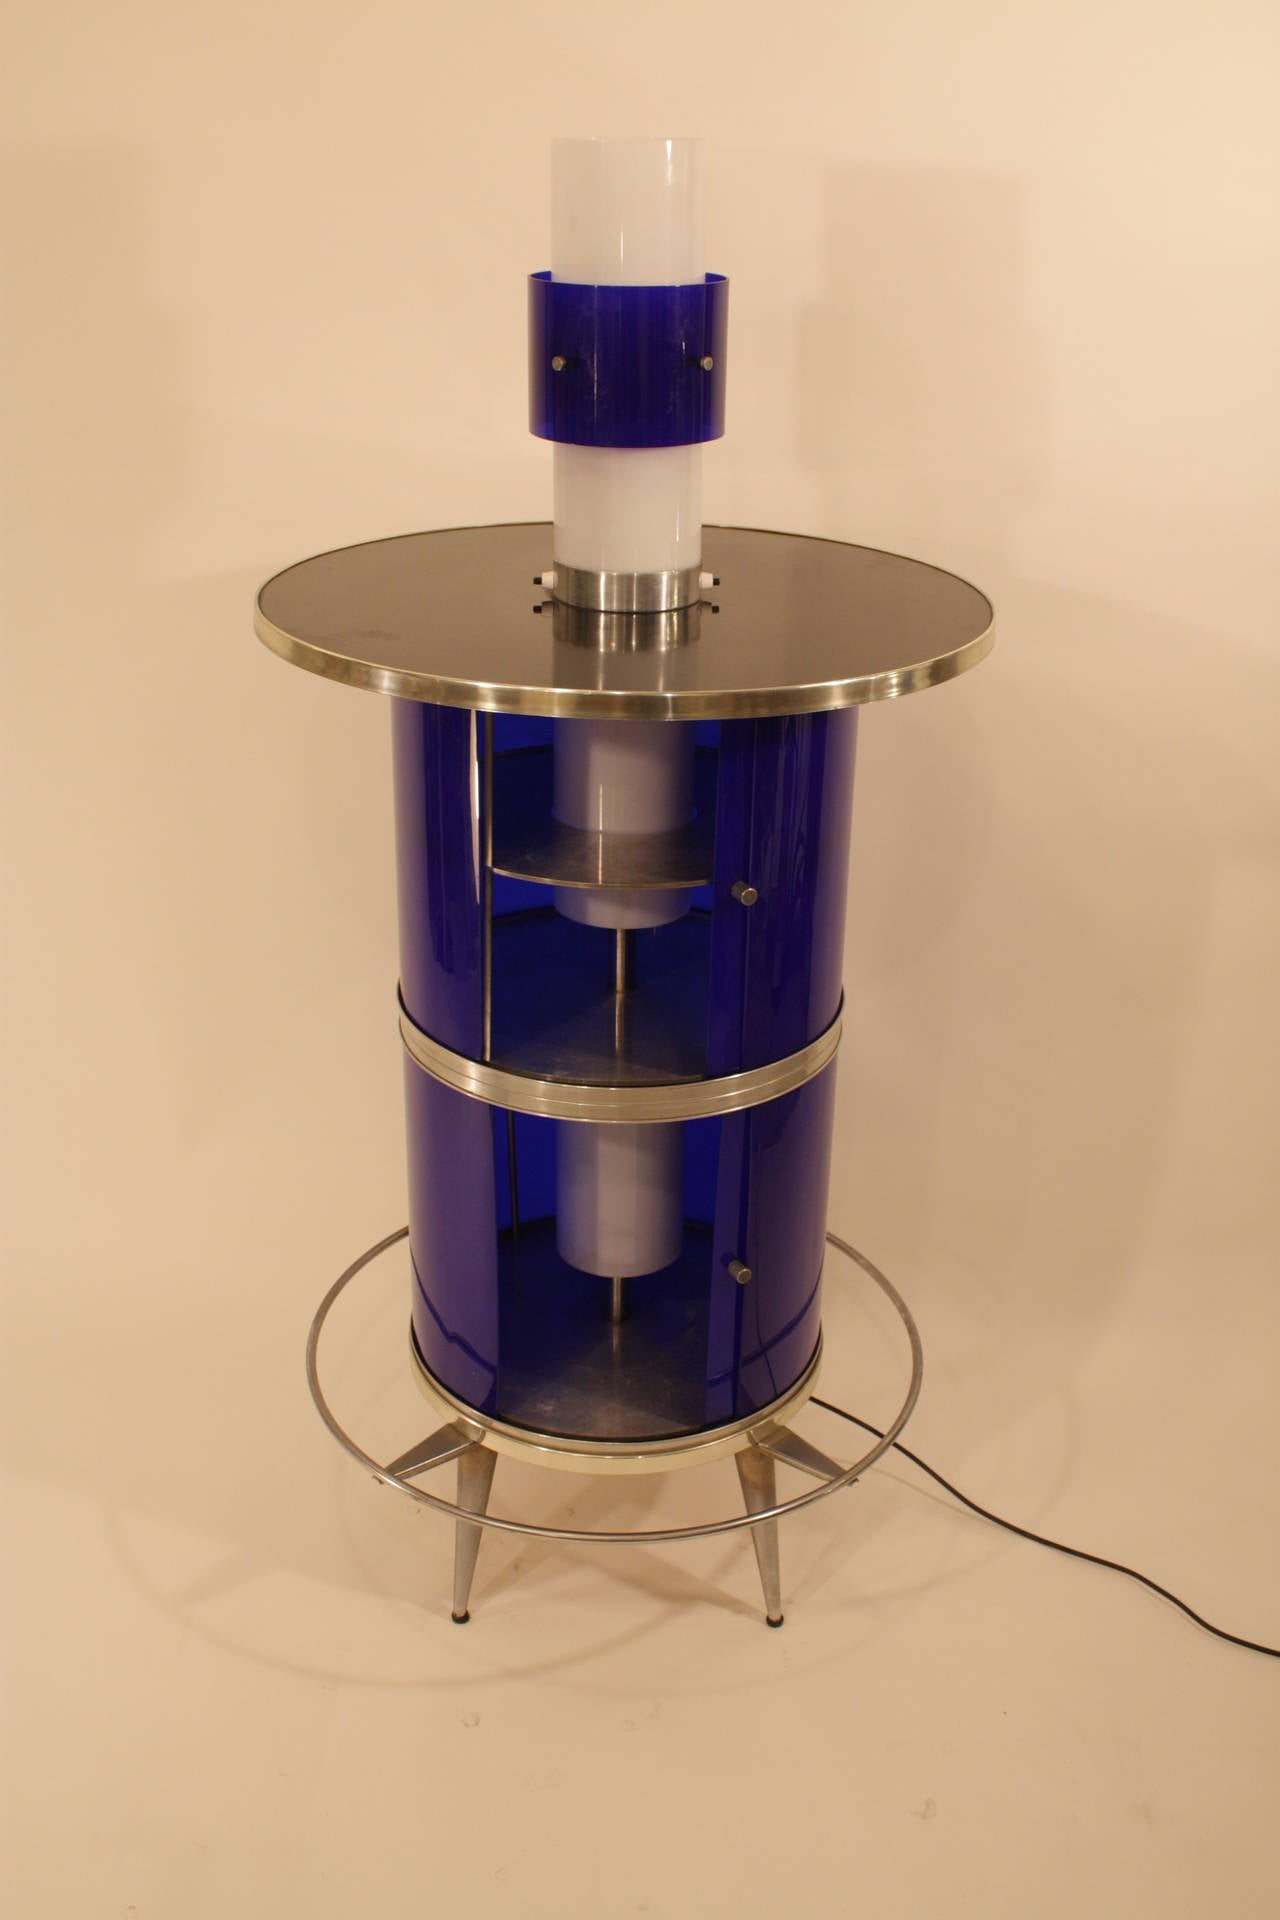 Spanish 1960s Space Age Blue and White Plexiglass Cocktails Bar with Table Lamp 5